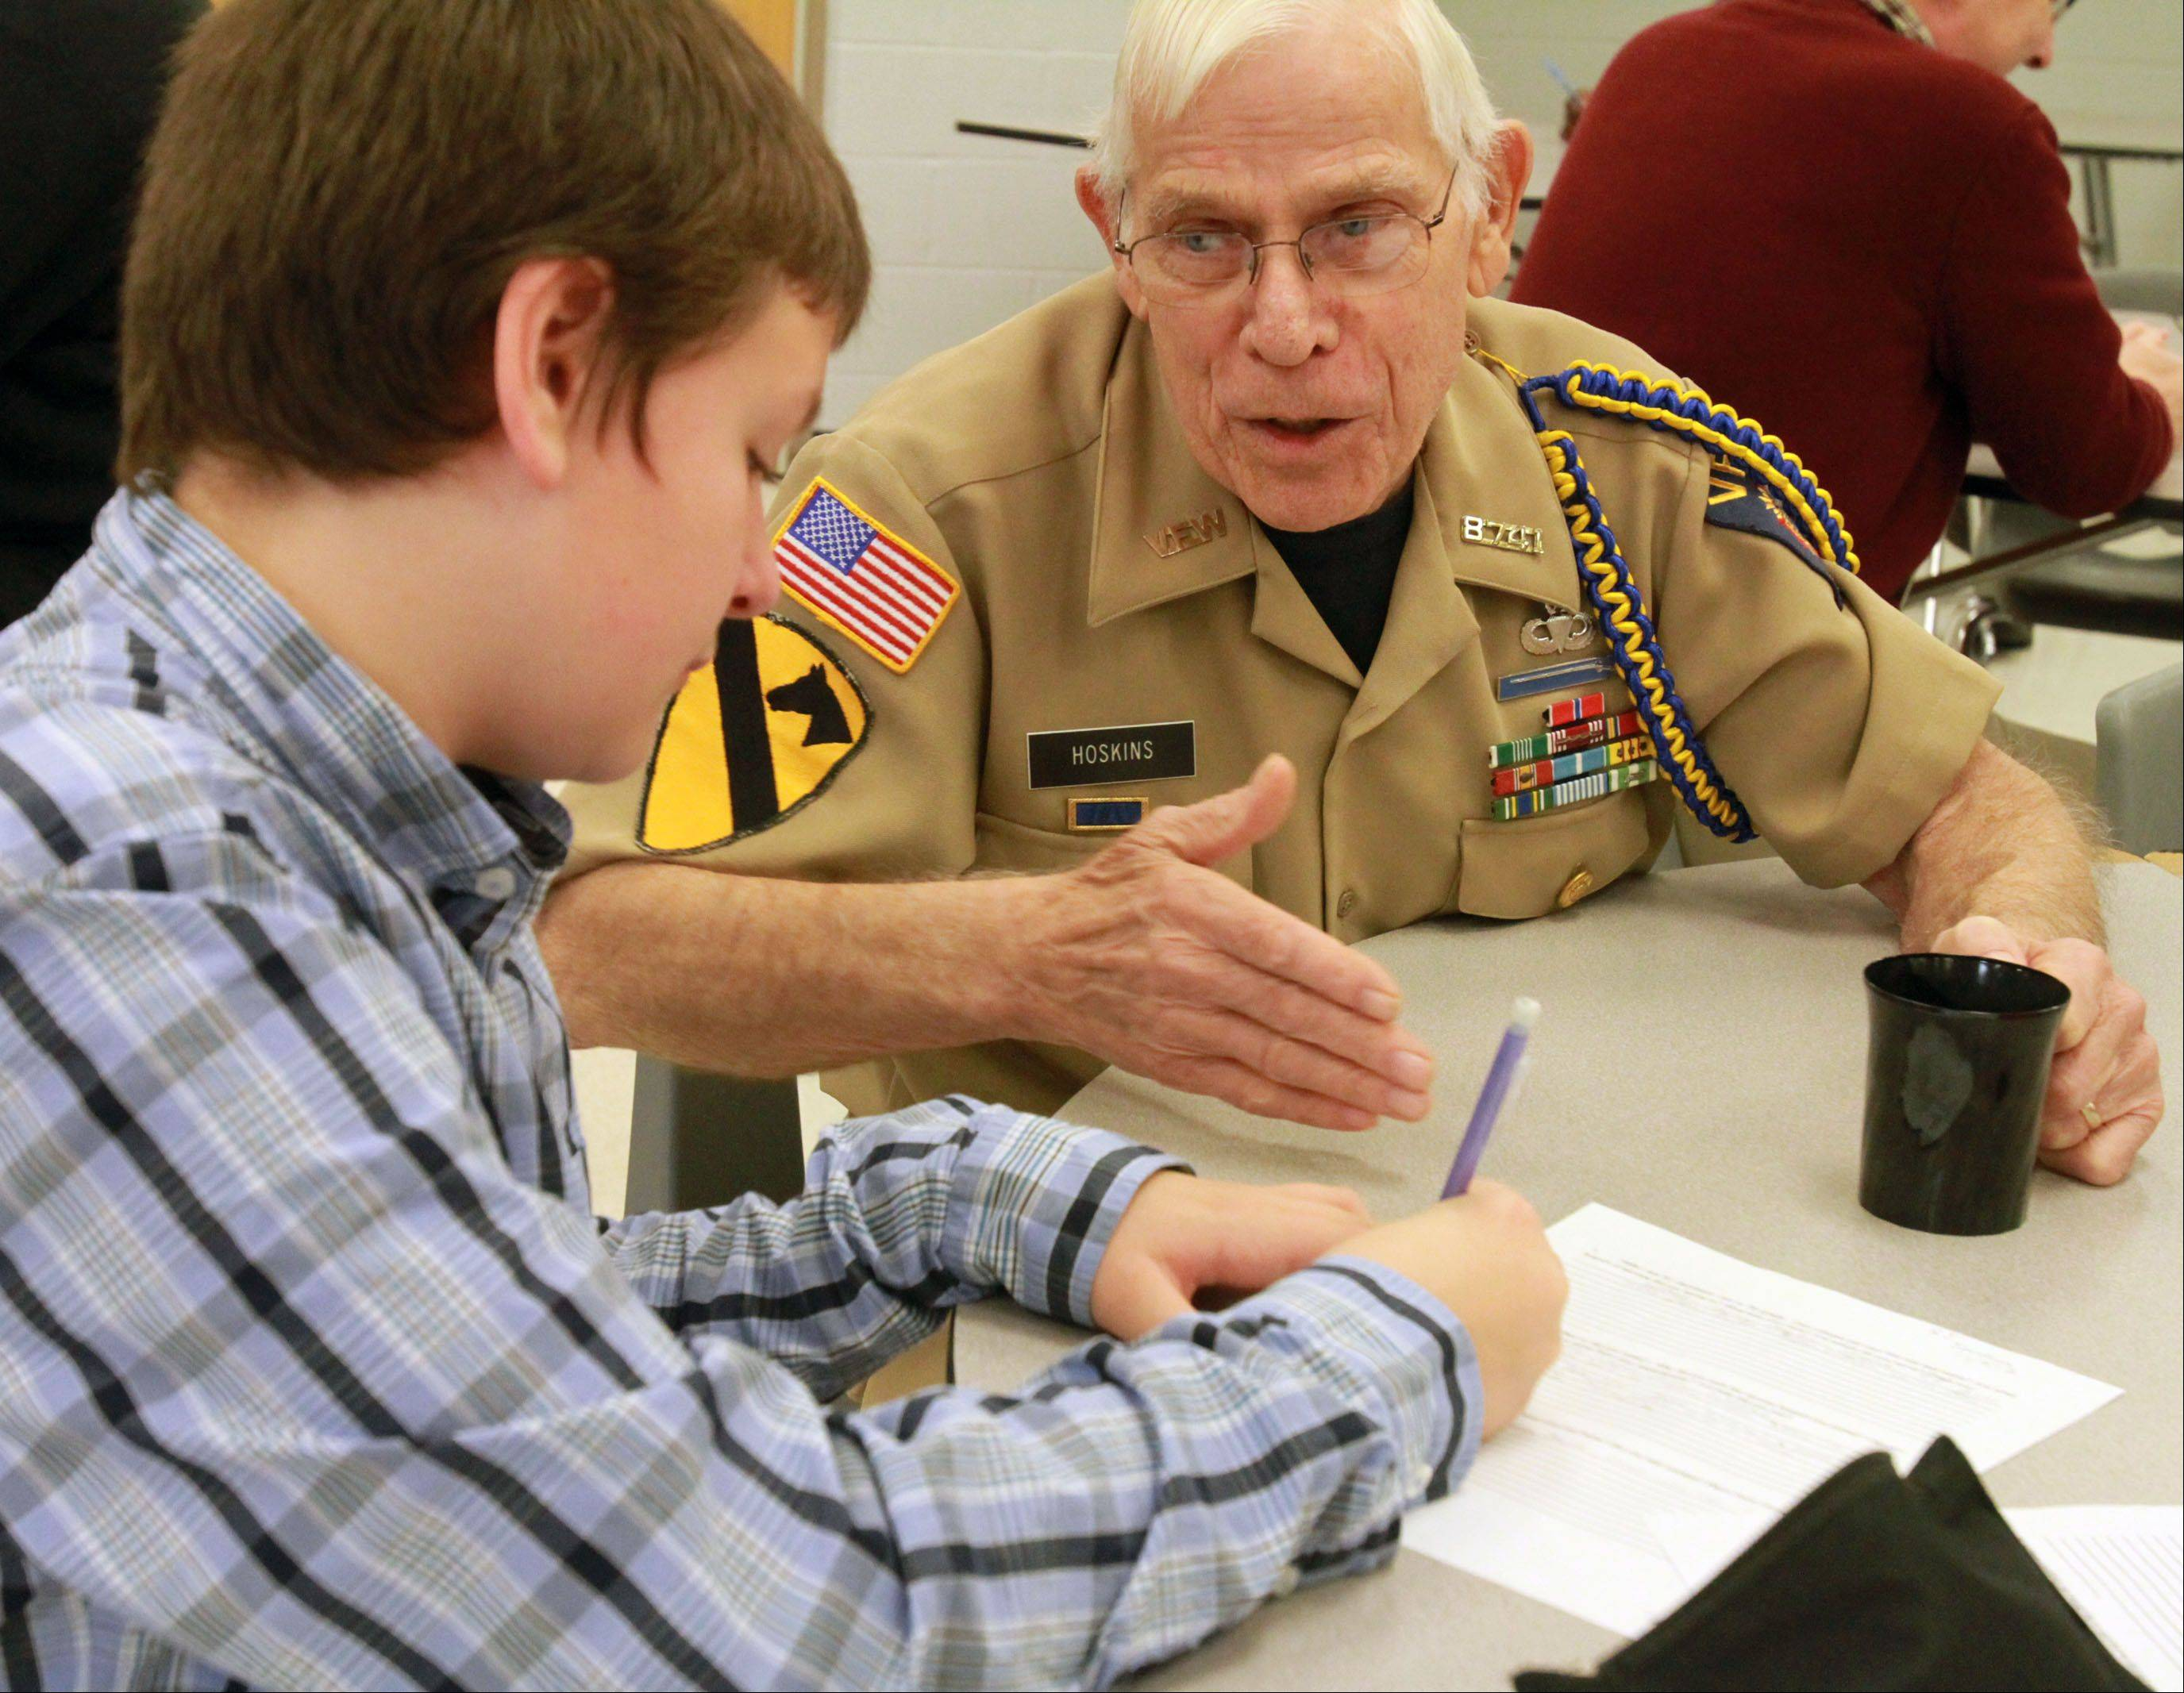 Seventh-grade student RJ Jacobson interviews Elmer Hoskins of Wildwood of VFW Post 8741, for his social studies class, after a Veteran's Day breakfast and program at Hawthorn Middle School in Vernon Hills.